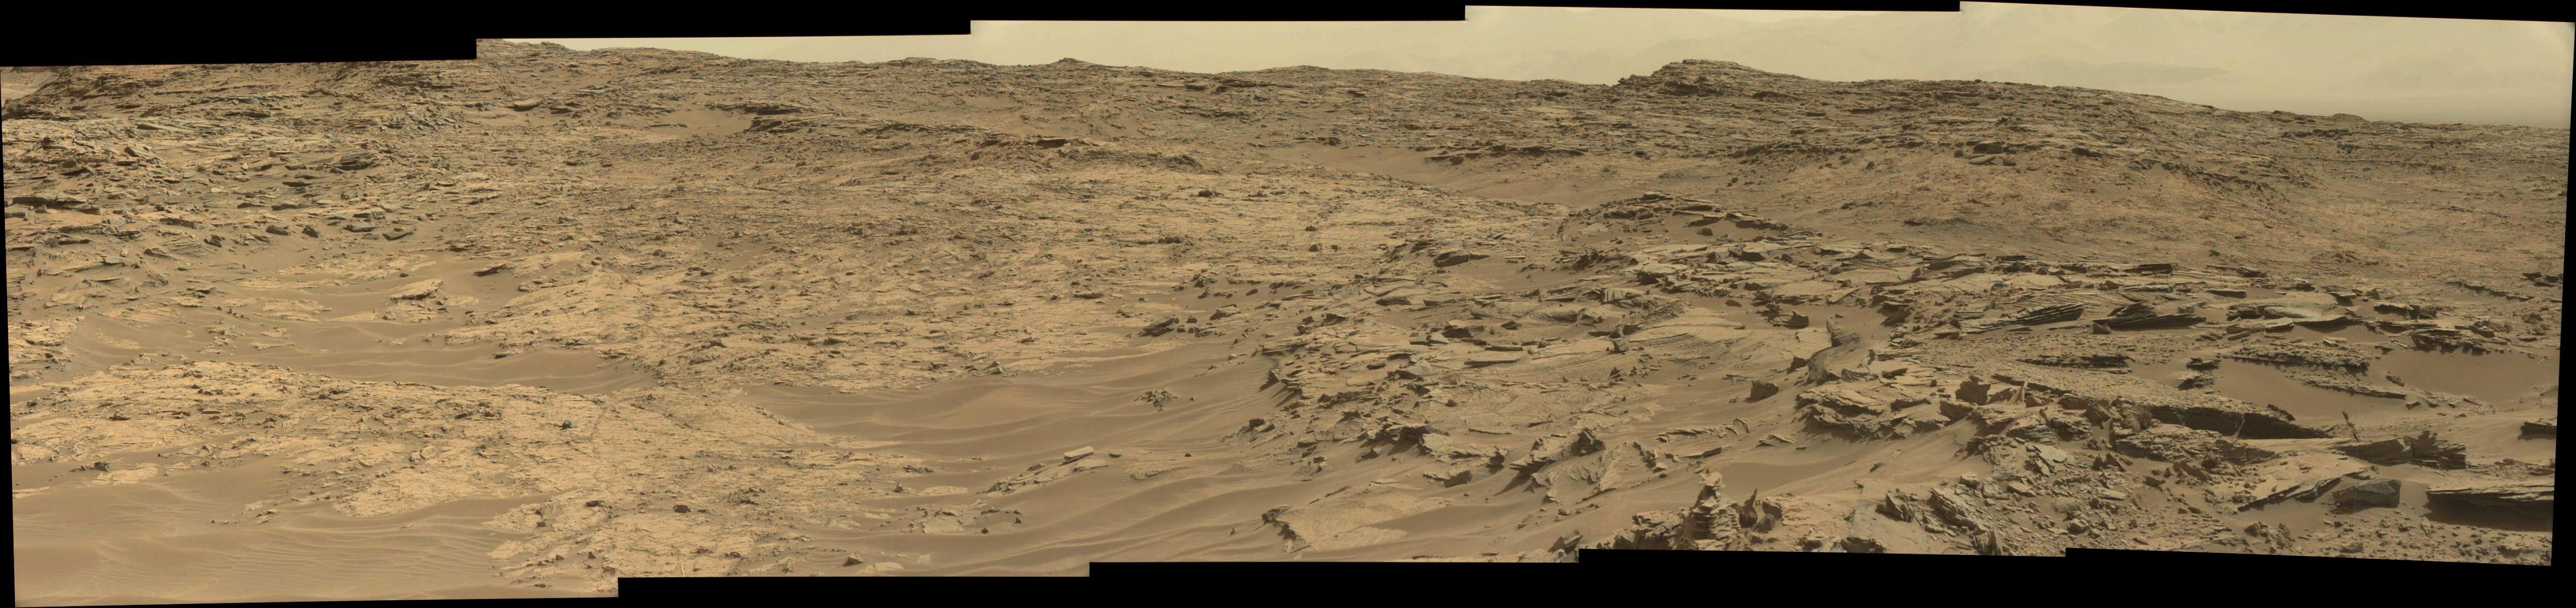 Curiosity Rover Panoramic View 1 of Mars Sol 1349 – Click to enlarge